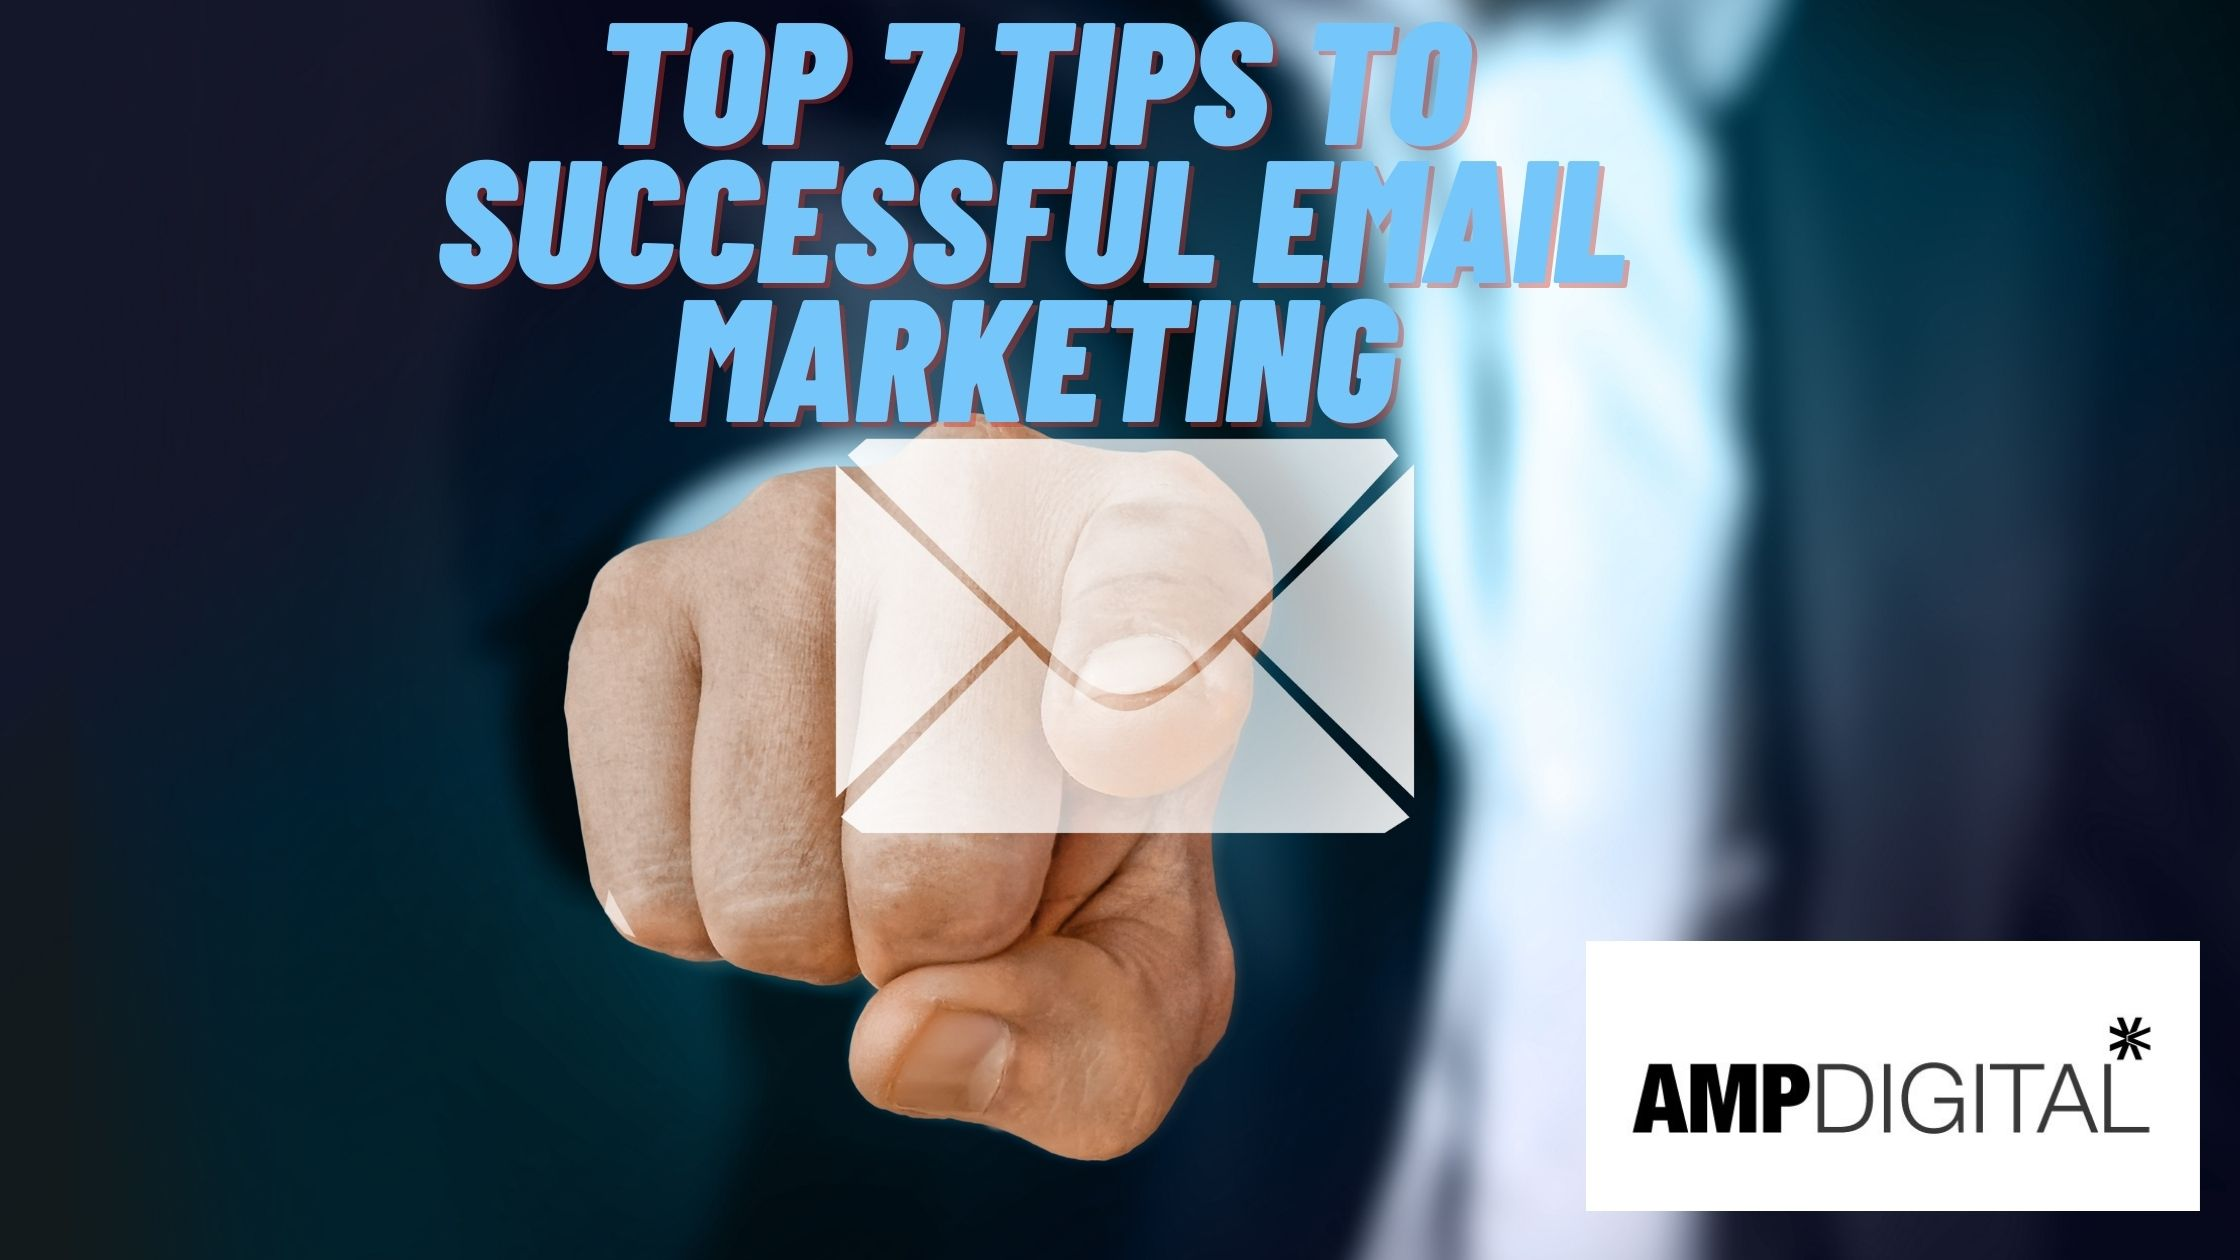 Top 7 Tips To Successful Email Marketing